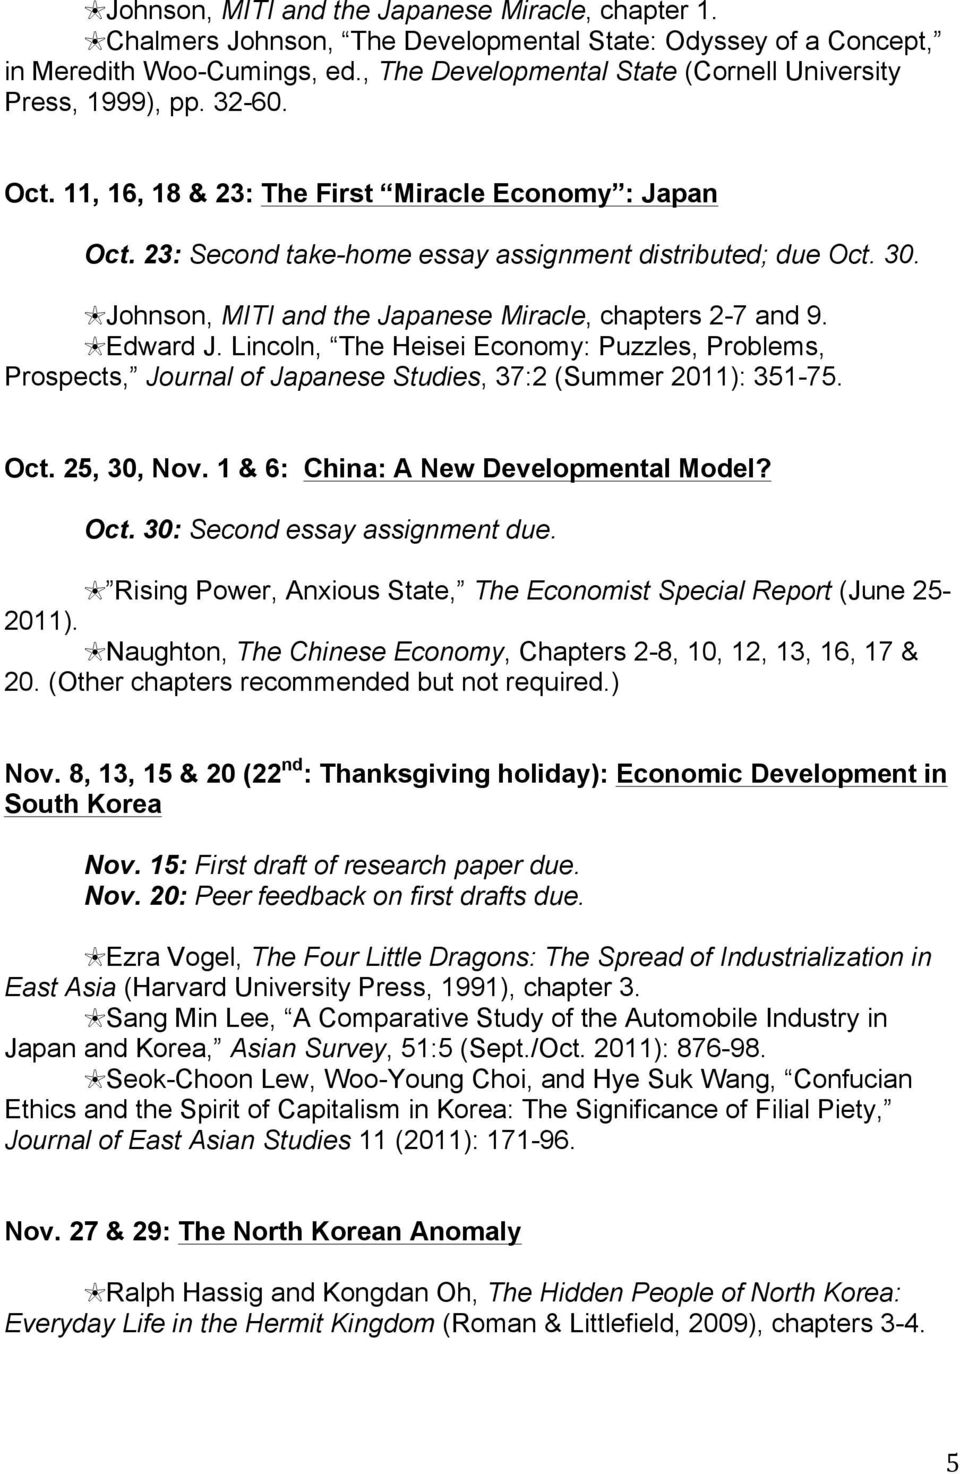 Johnson, MITI and the Japanese Miracle, chapters 2-7 and 9. Edward J. Lincoln, The Heisei Economy: Puzzles, Problems, Prospects, Journal of Japanese Studies, 37:2 (Summer 2011): 351-75. Oct.